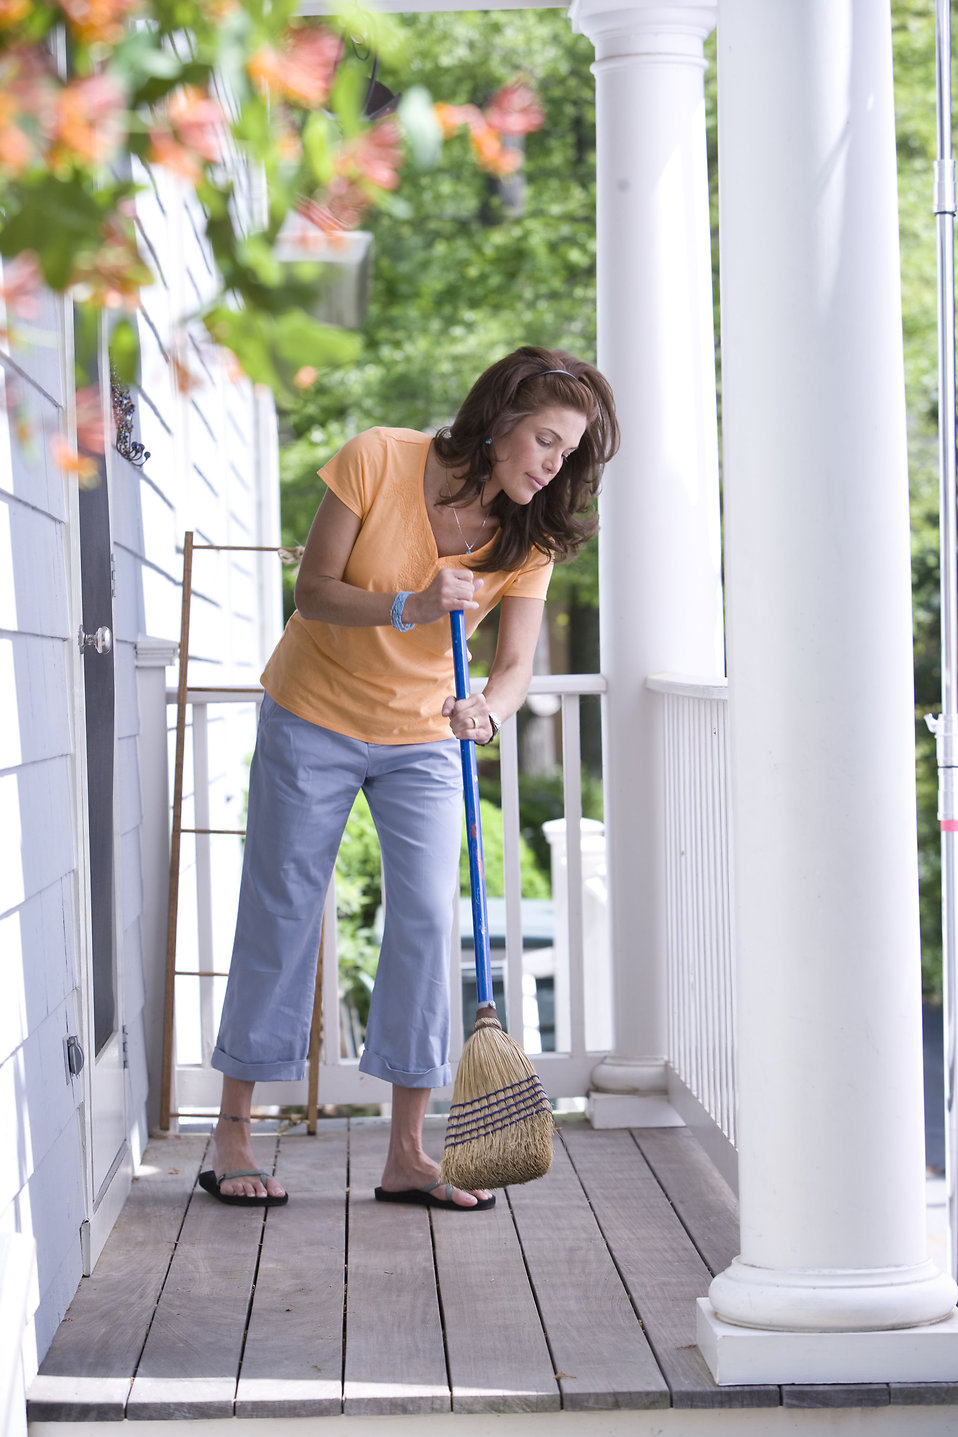 Sweeping  Free Stock Photo  A woman sweeping her front